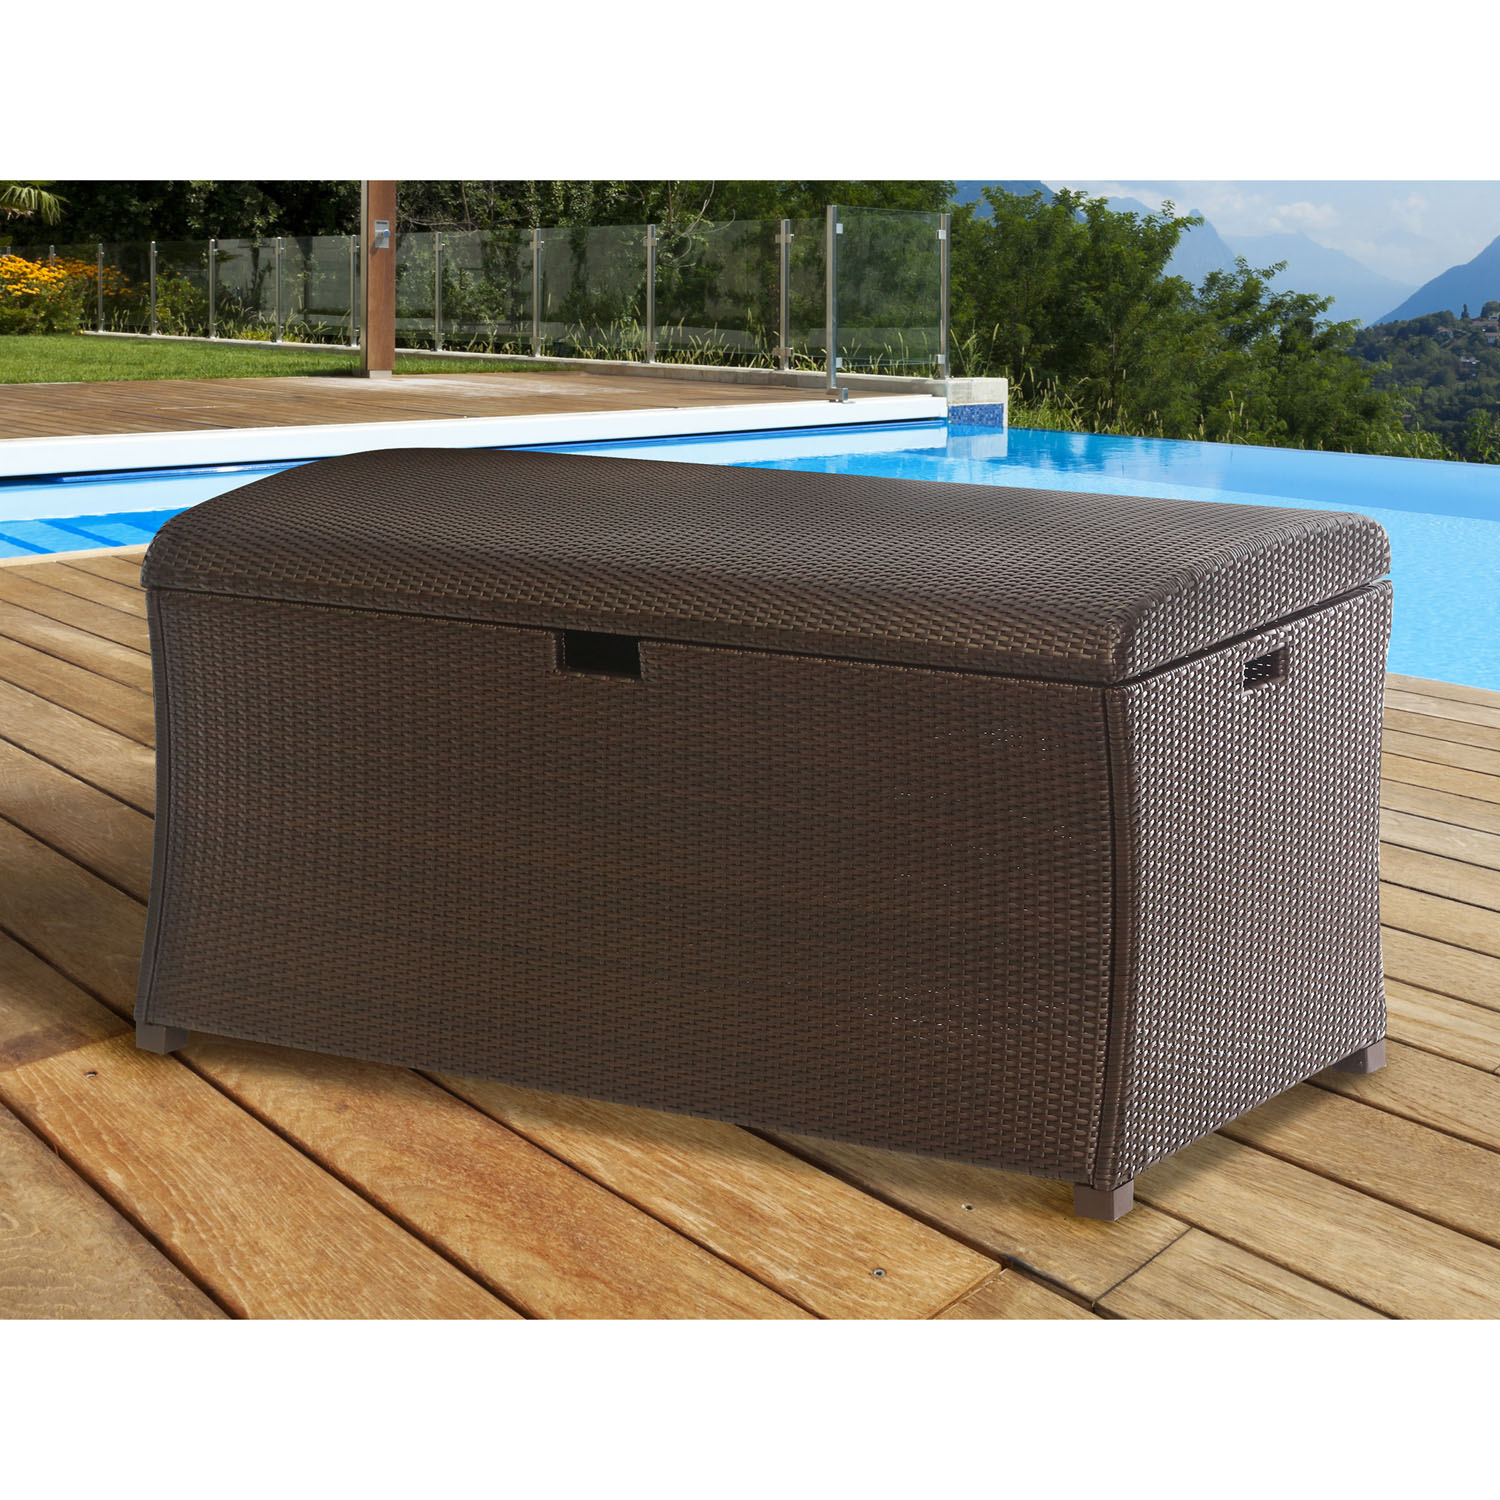 Large Resin Deck Box For Outdoor Storage Han Lgtrunk